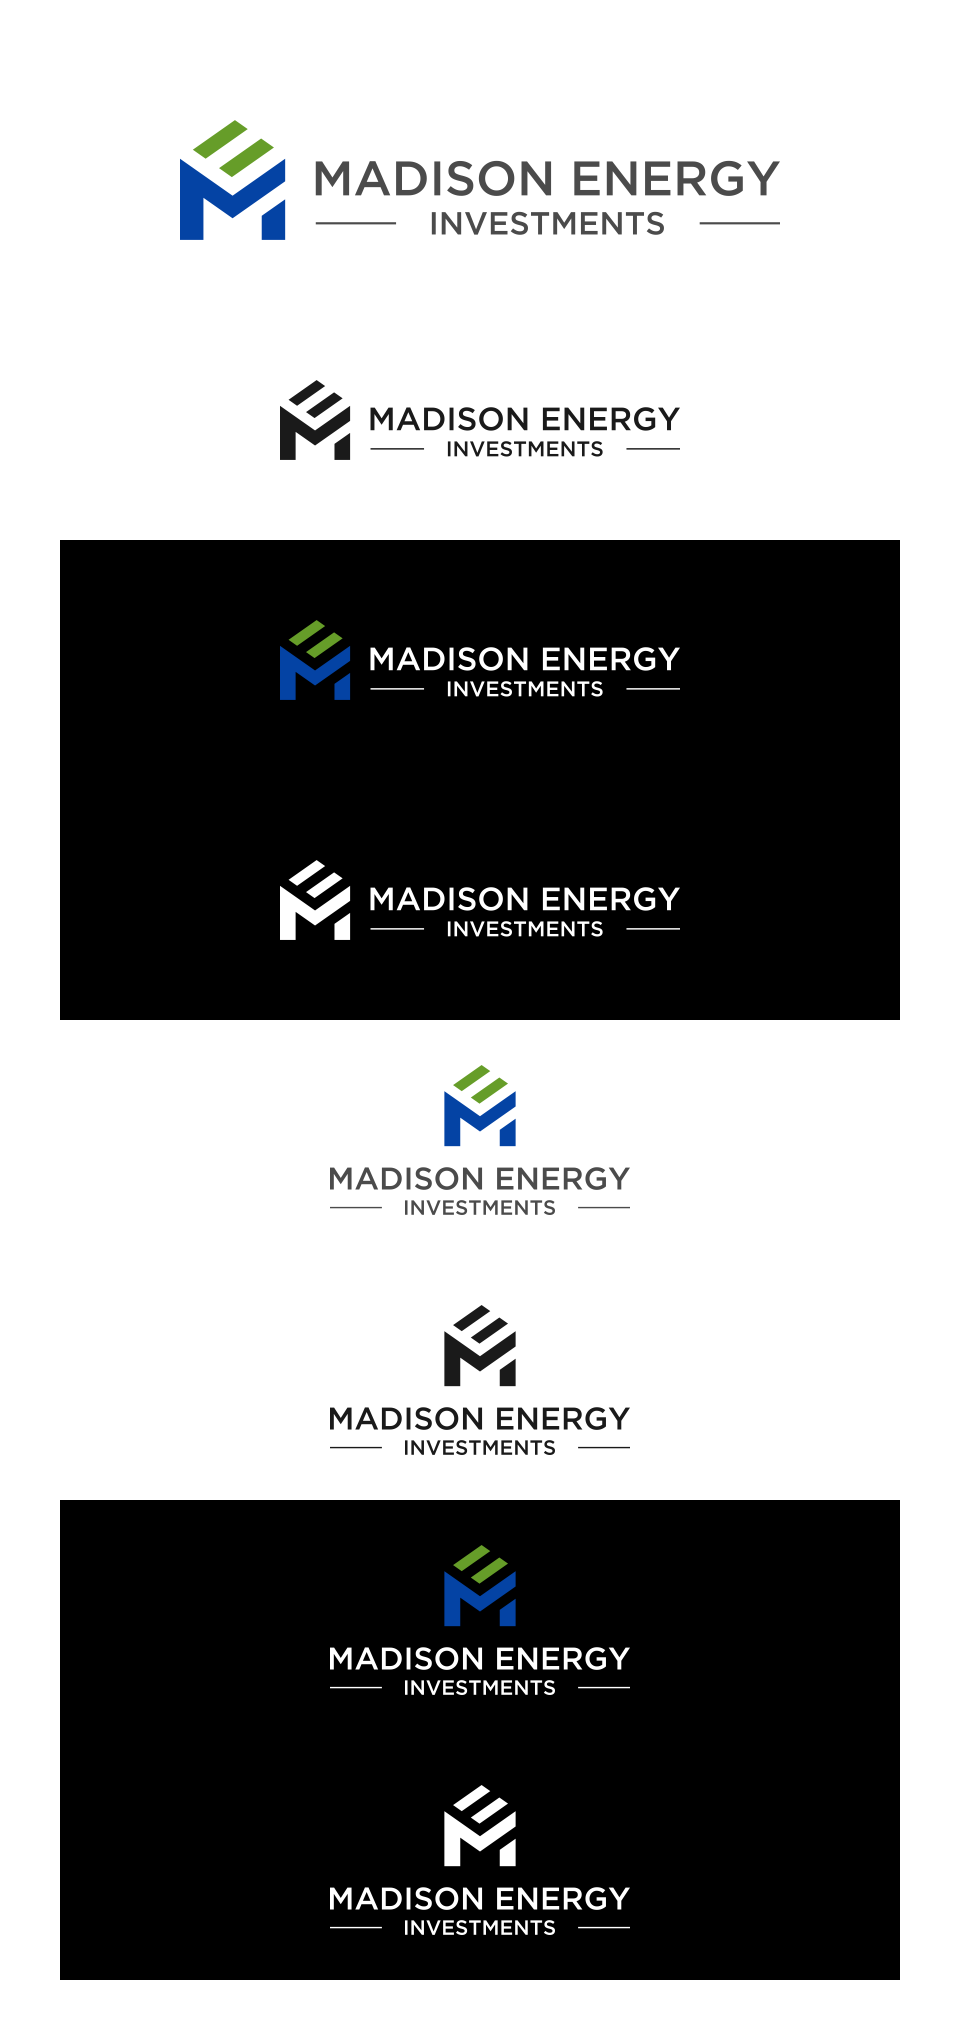 Energy Investment Firm needs an awesome logo!